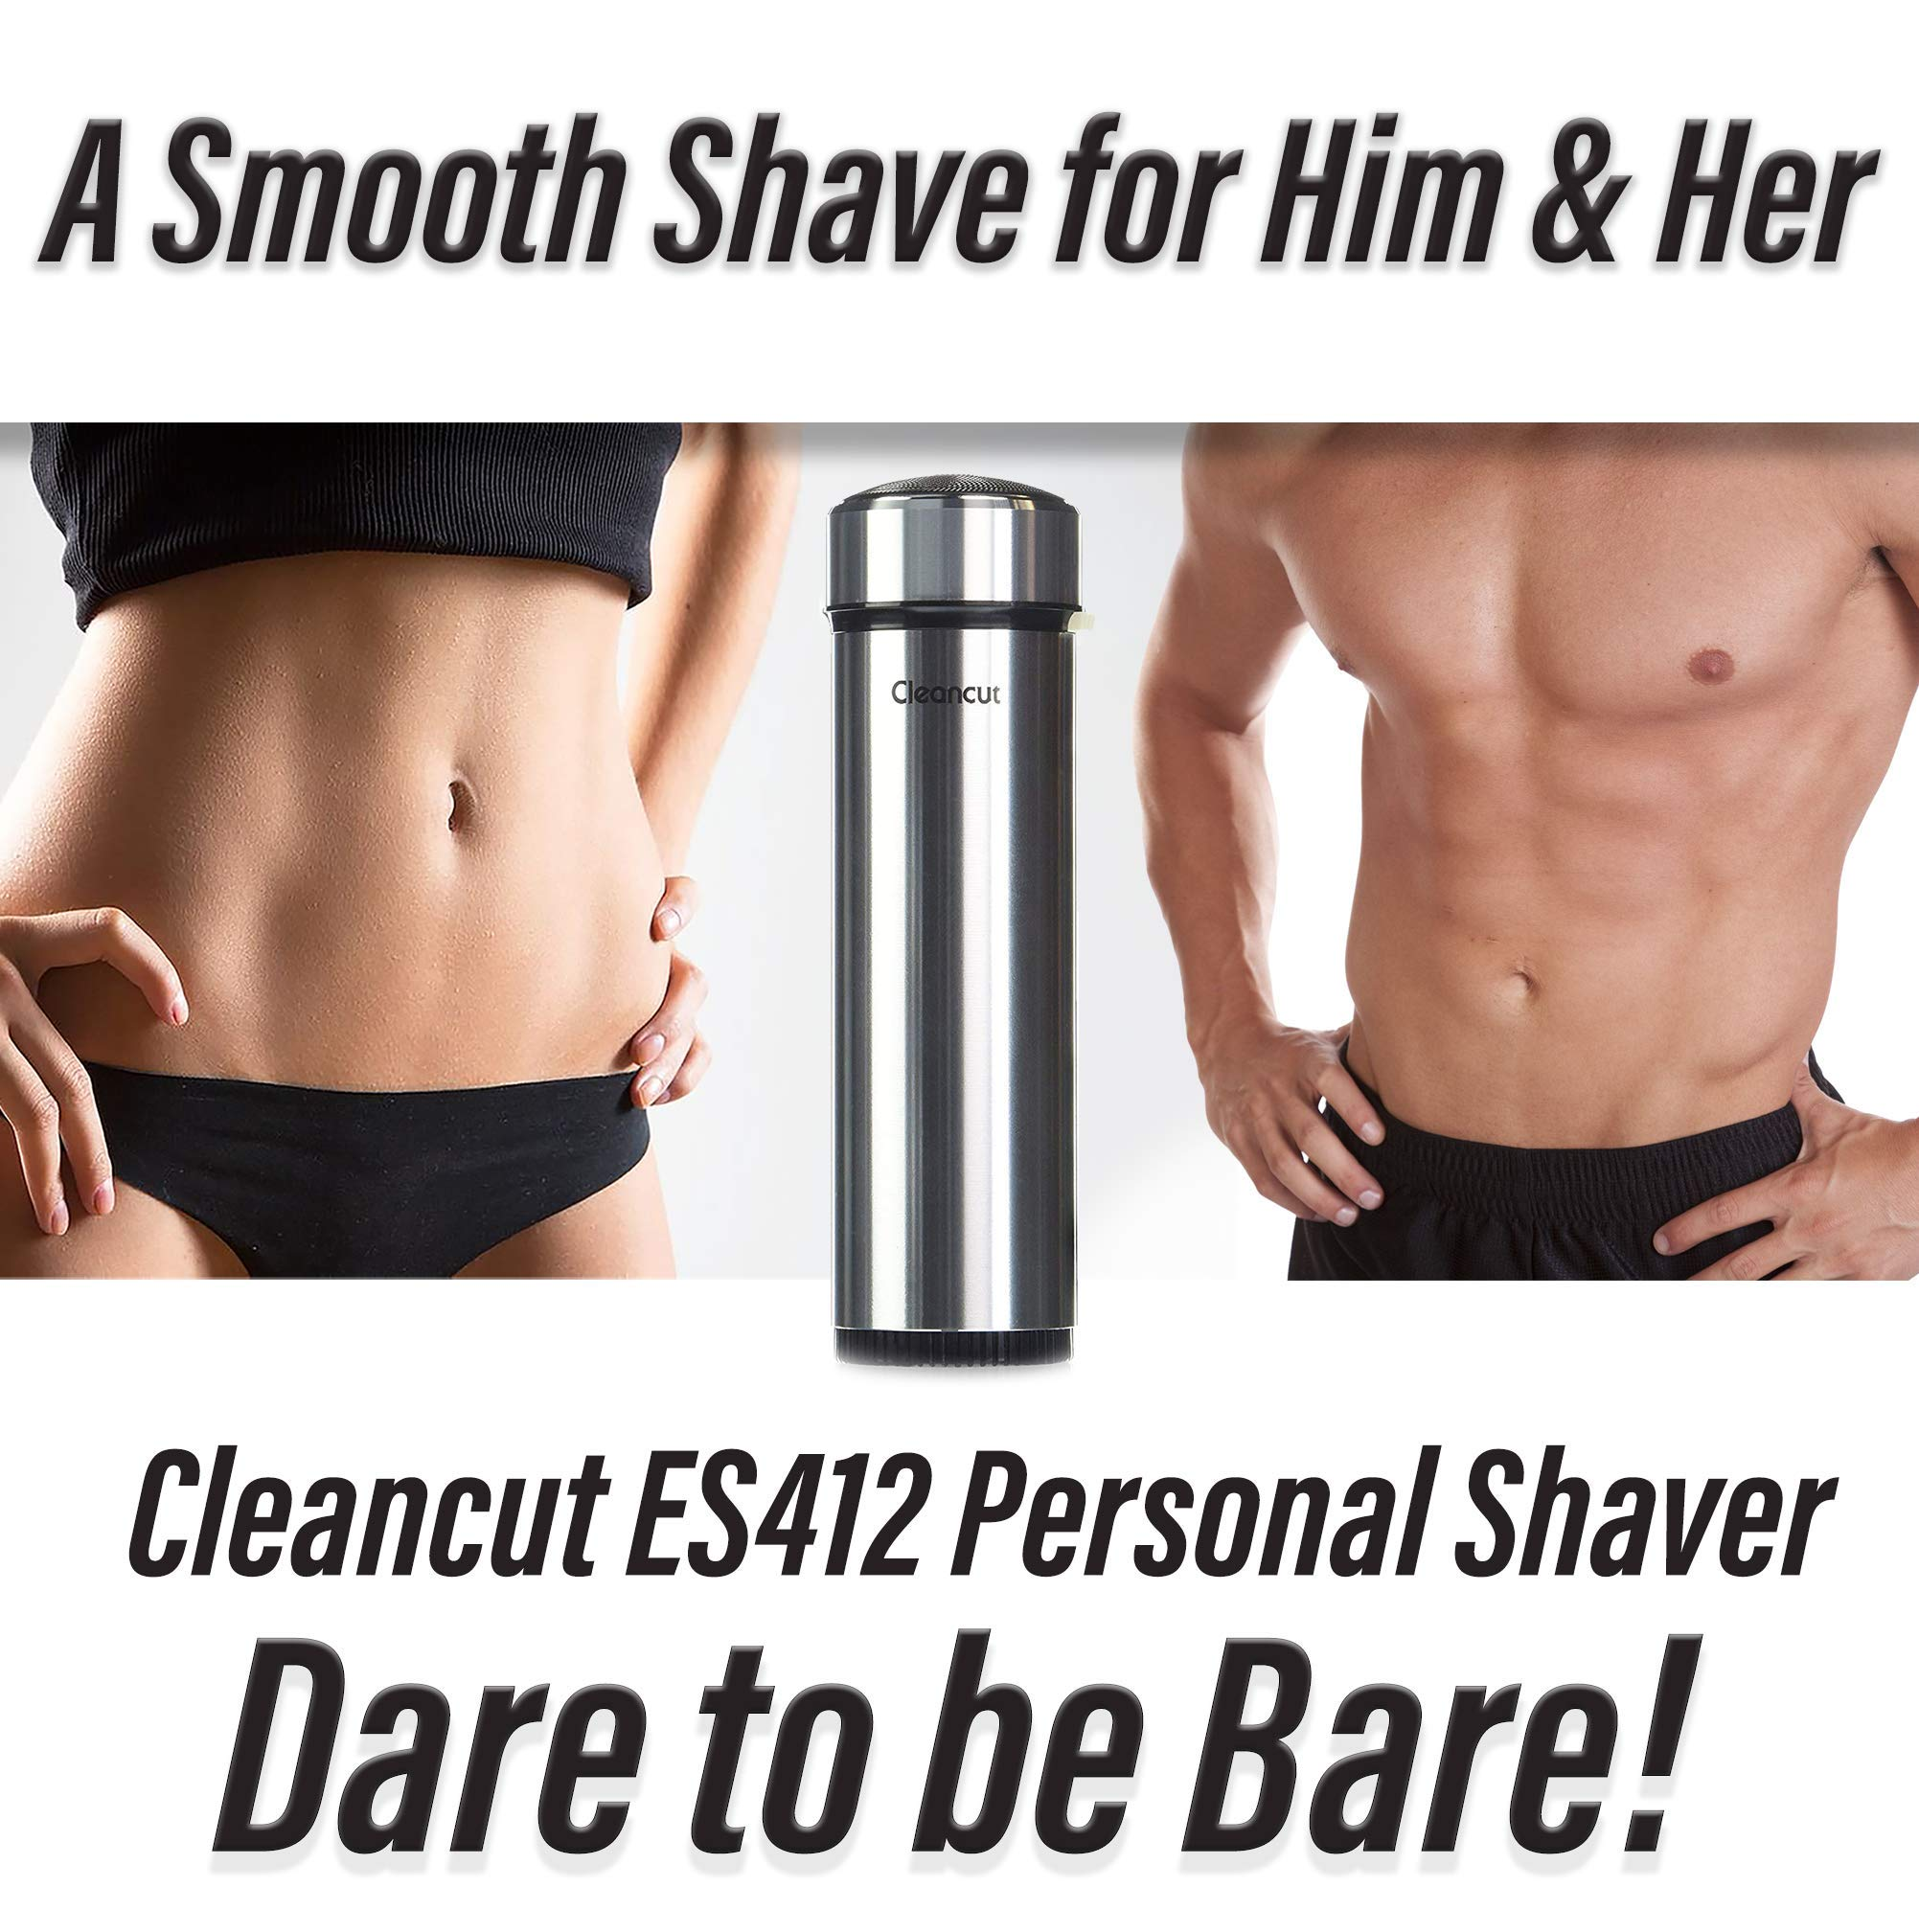 Cleancut Intimate Sensitive Area Shaver Designed for Men and Women - for  the Best Results for